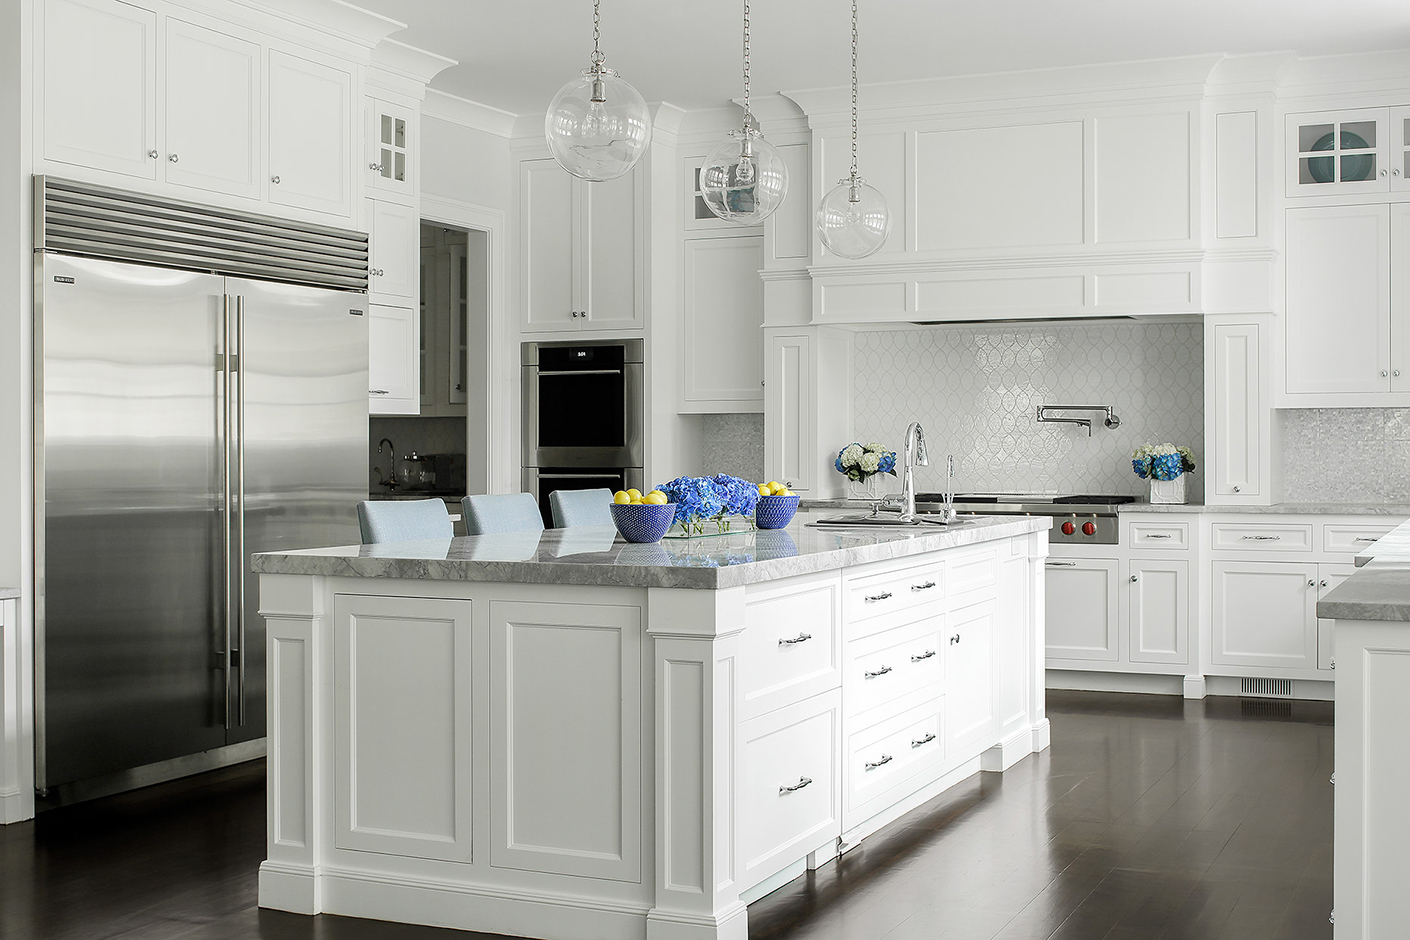 BathKitchen Karen B Wolf Interiors